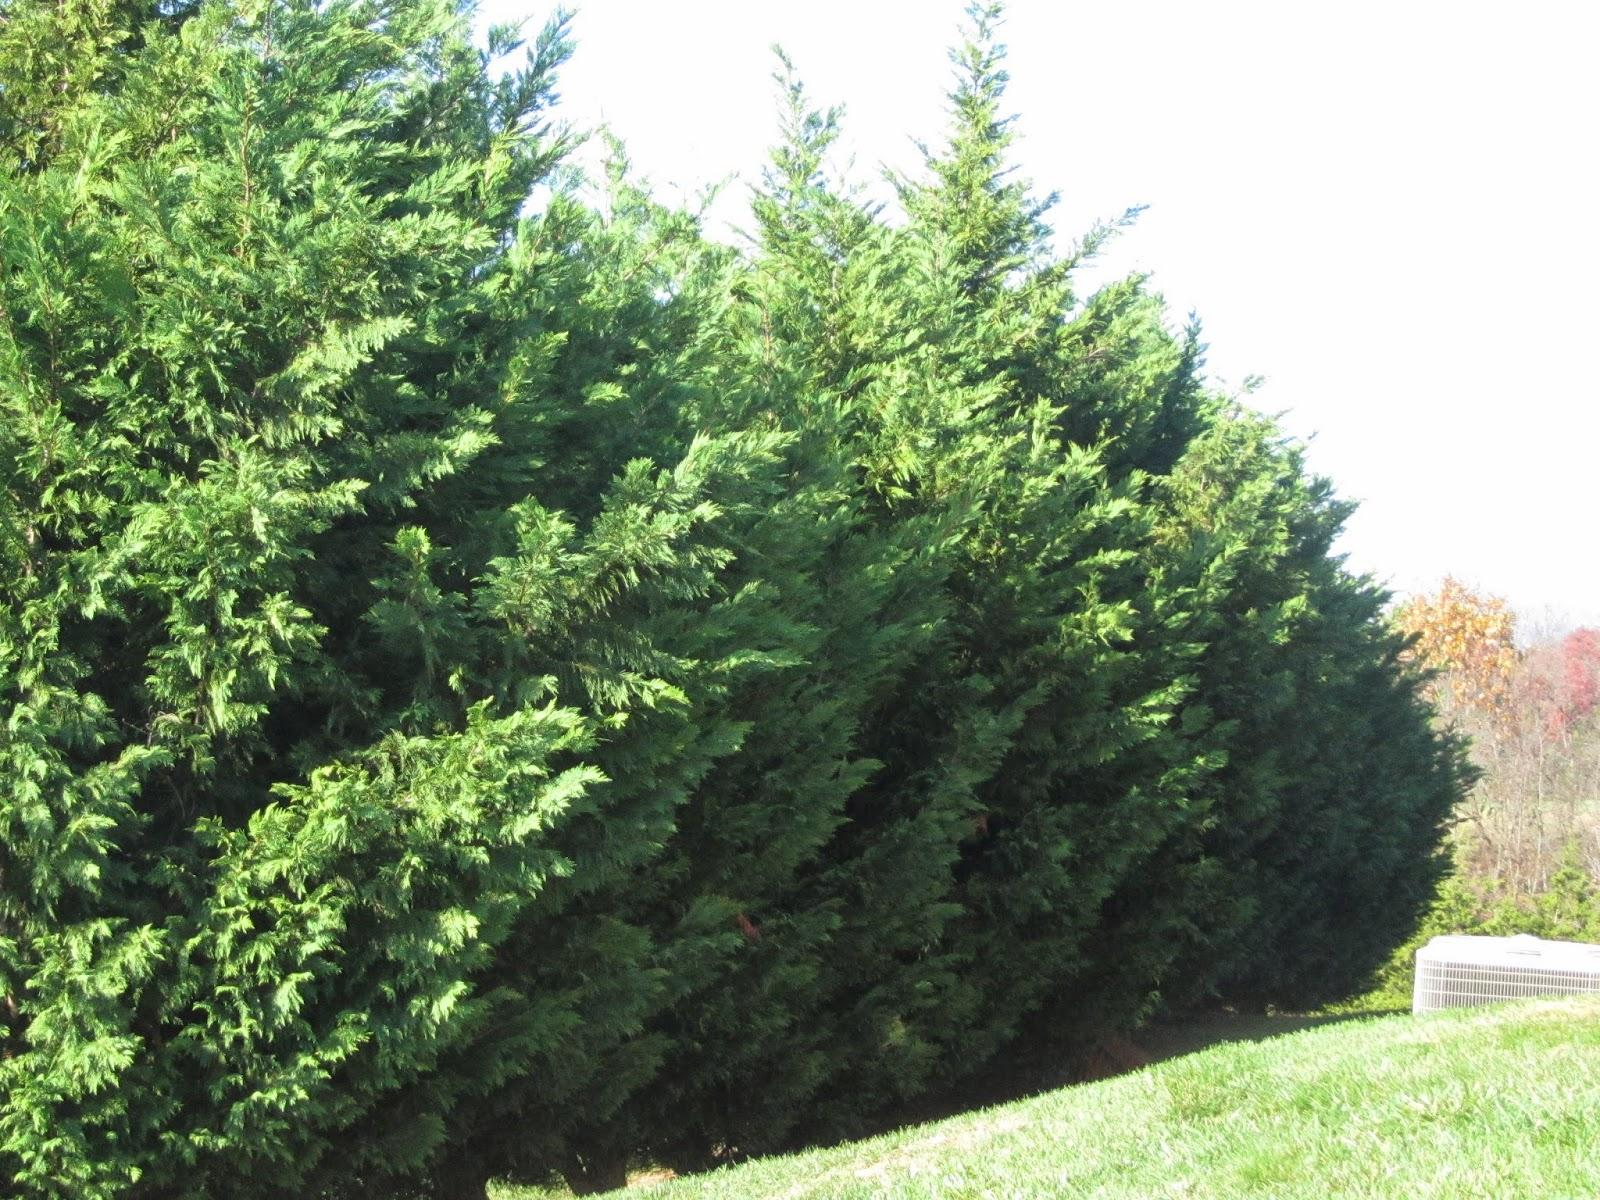 Leyland Cypress Pruning Is Often Used As A Quick Screen Because It Can Grow Up To 4 Feet Per Year Makes An Excellent Windbreak Or